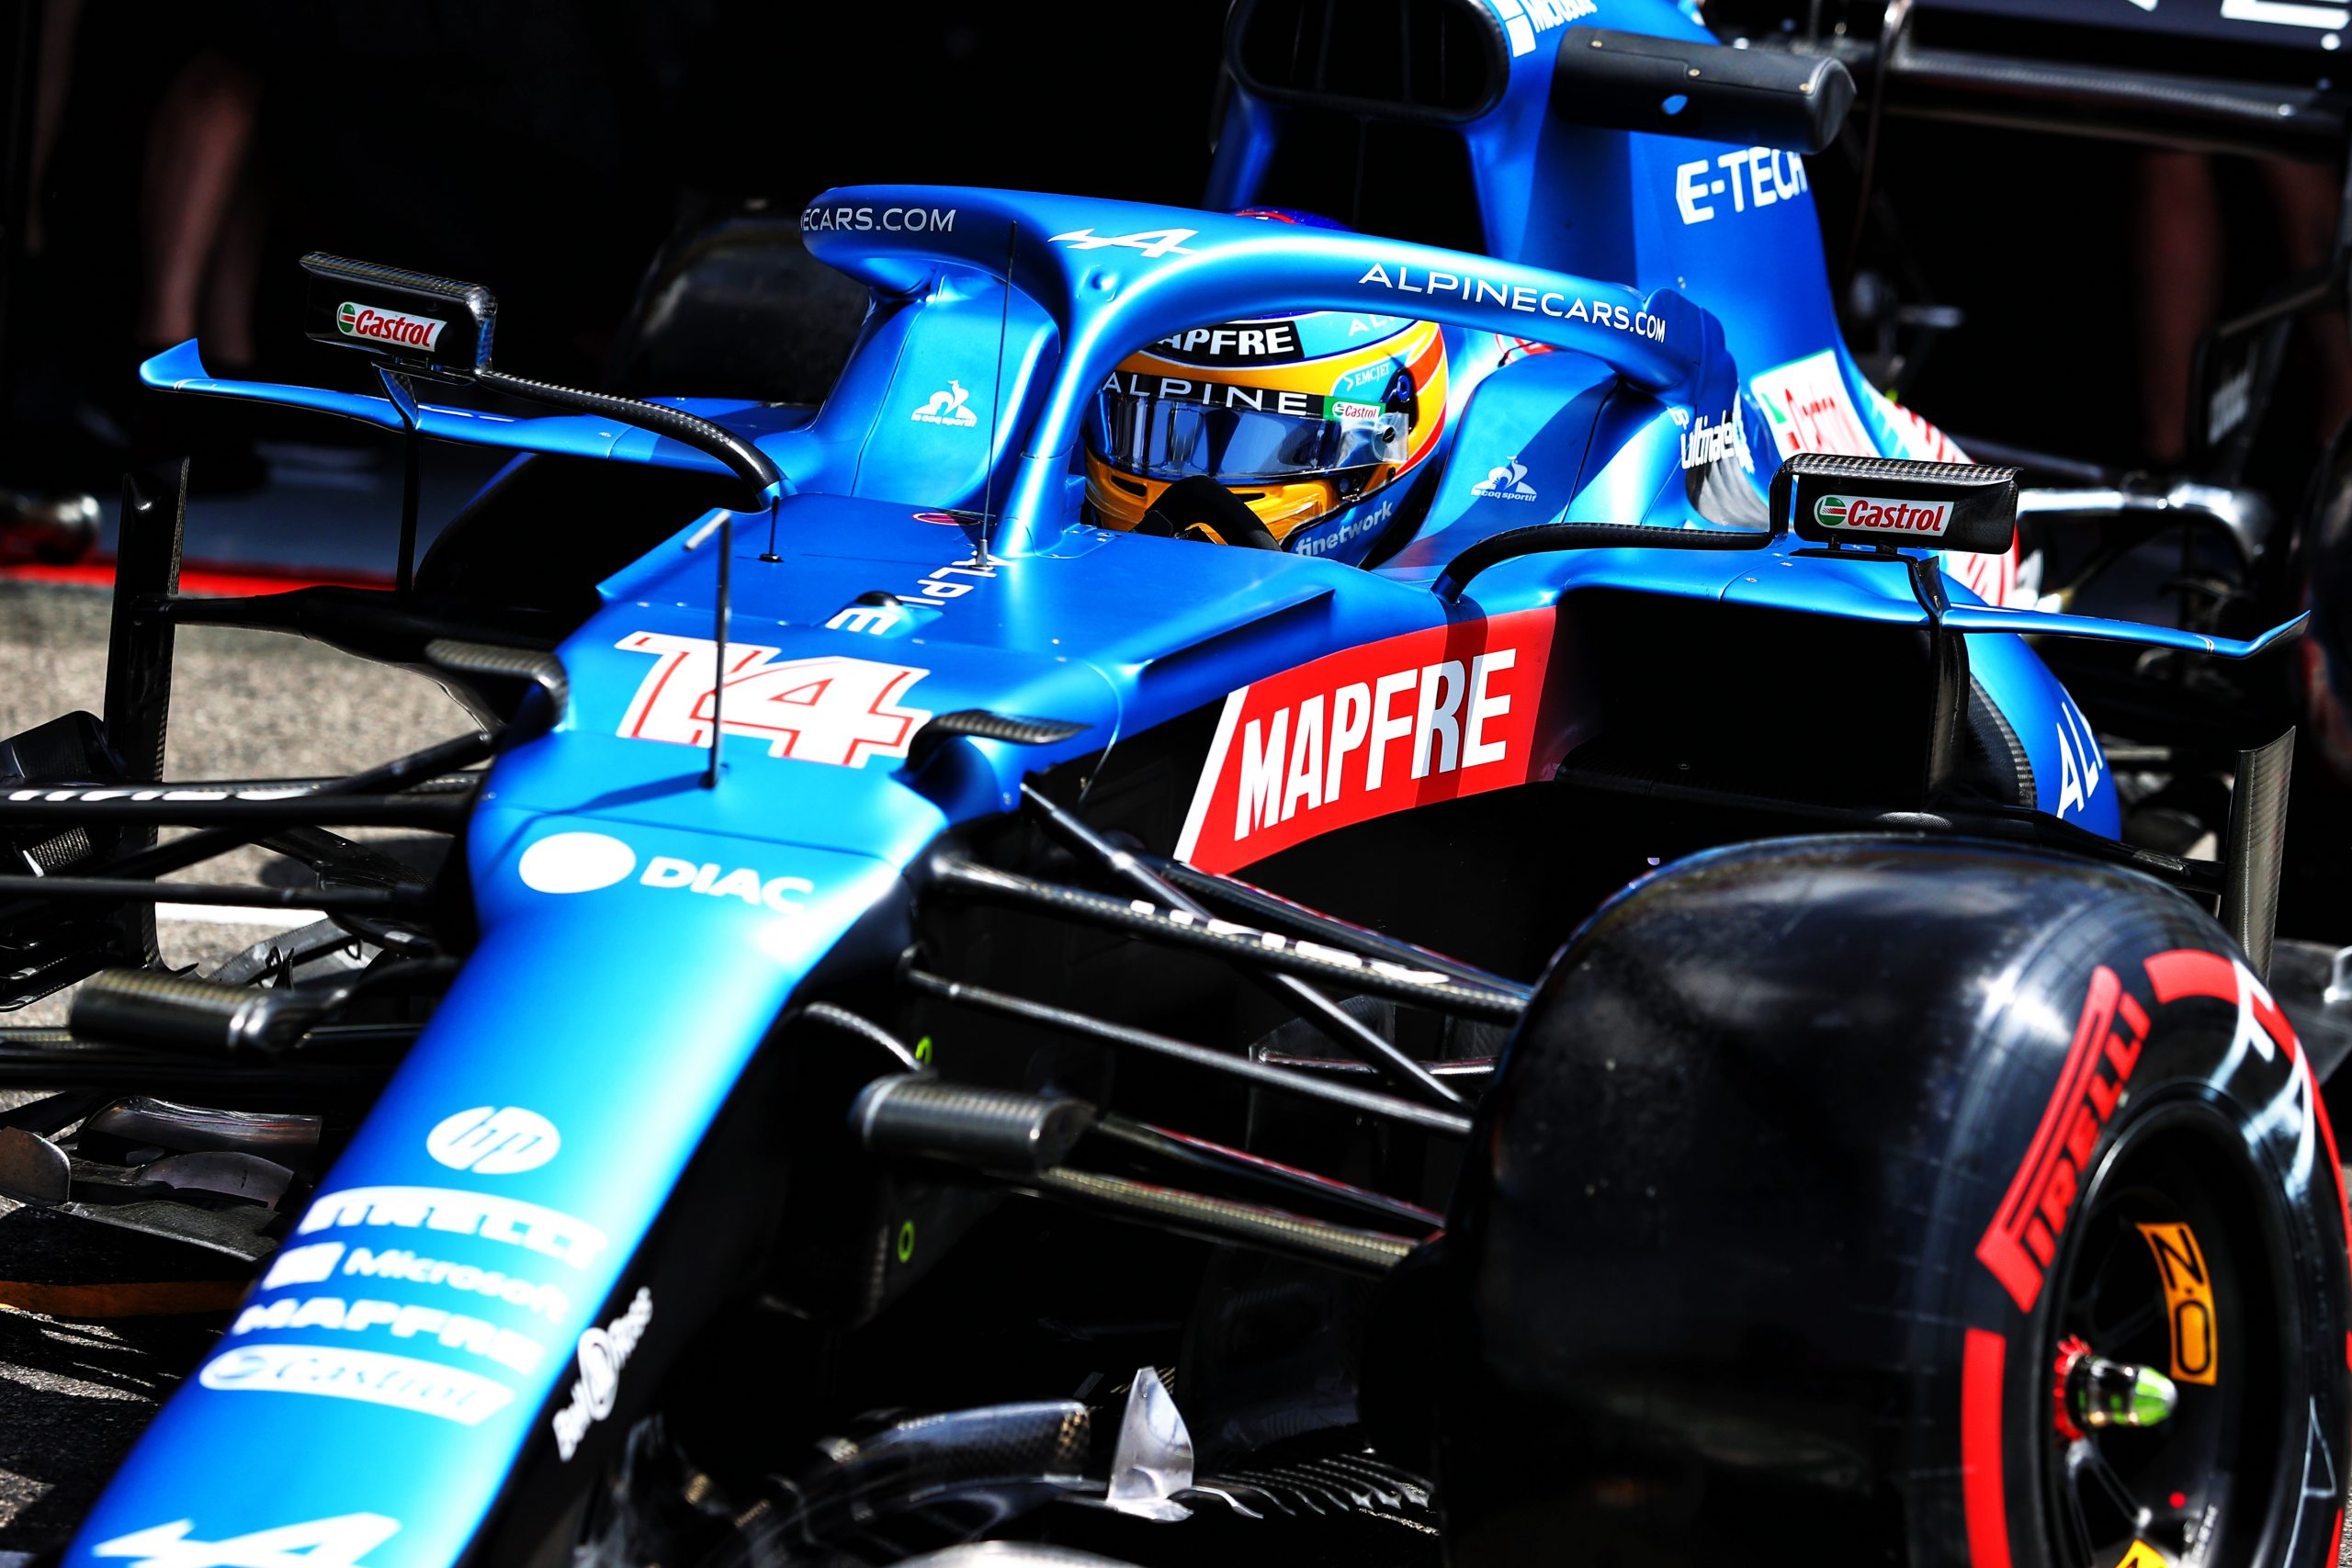 Alonso: Alpine 'looking quite competitive' after strong Friday